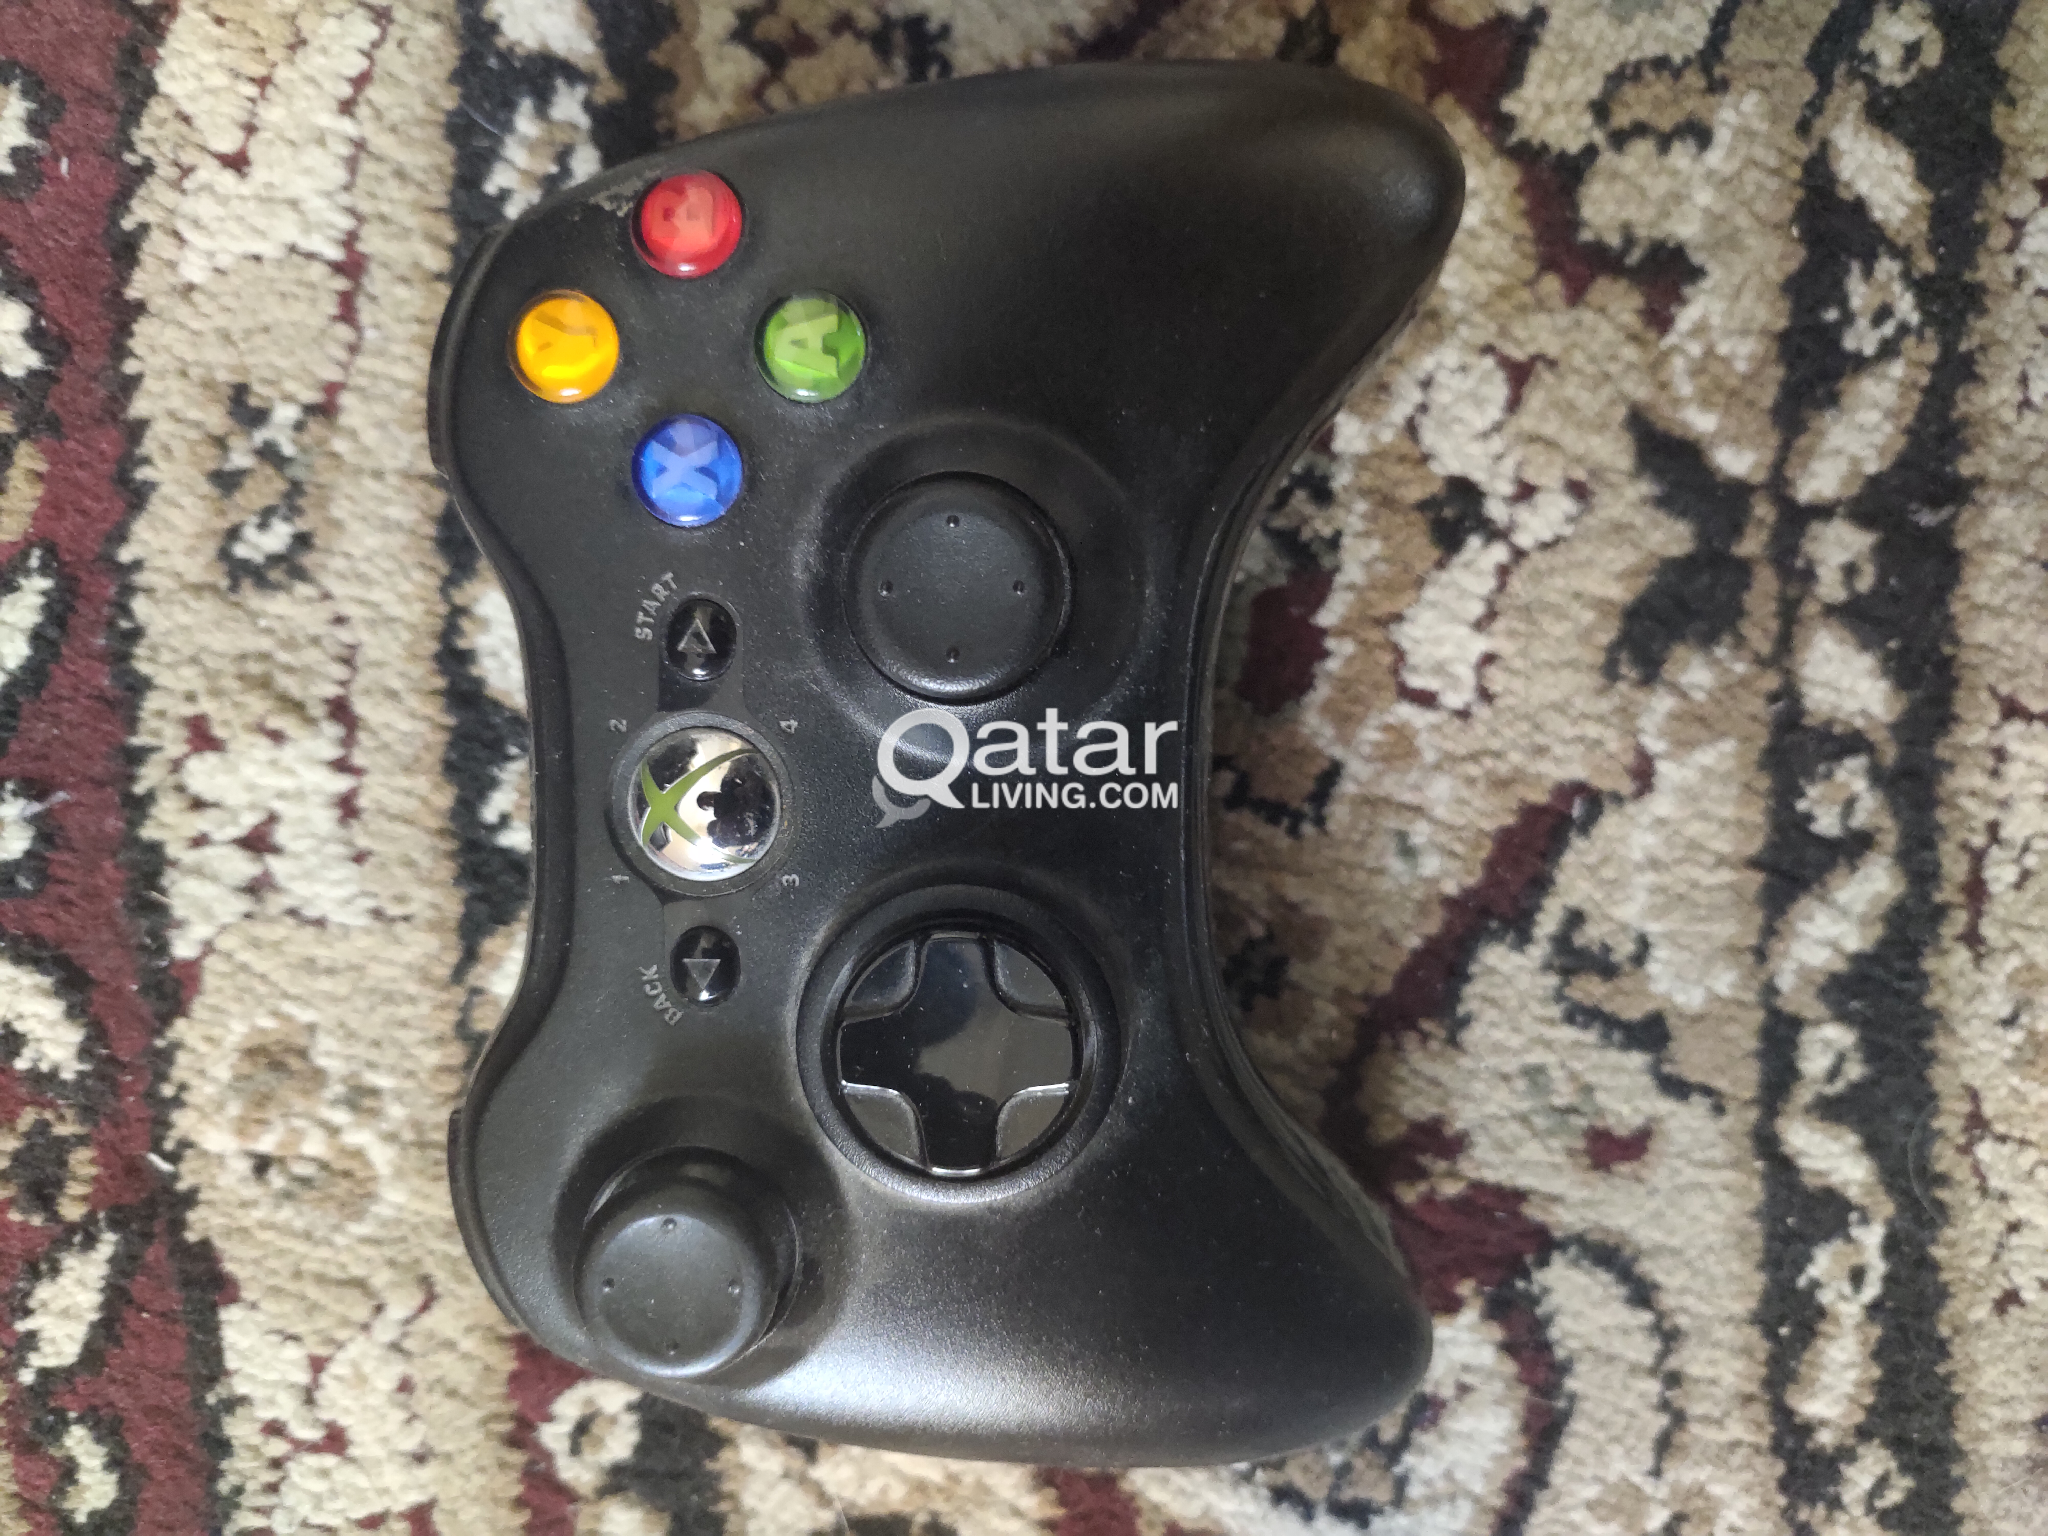 XBOX 360 S (Kinect Ready) FOR SALE